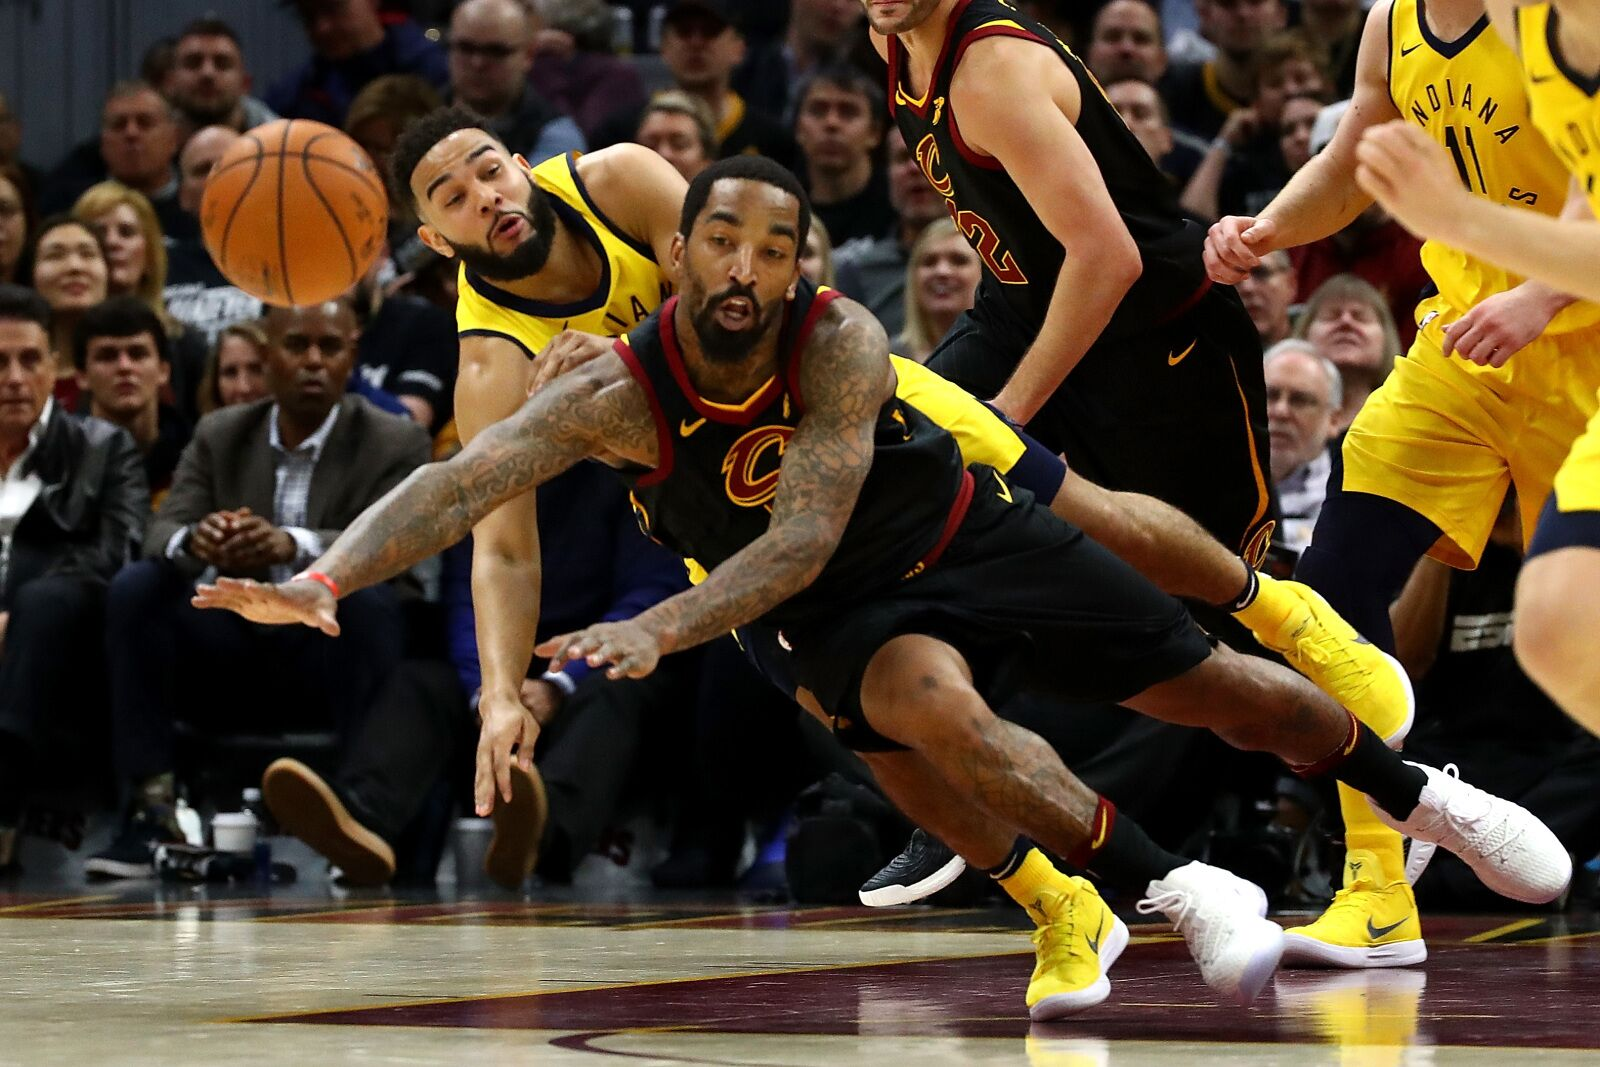 946645720-indiana-pacers-v-cleveland-cavaliers-game-one.jpg